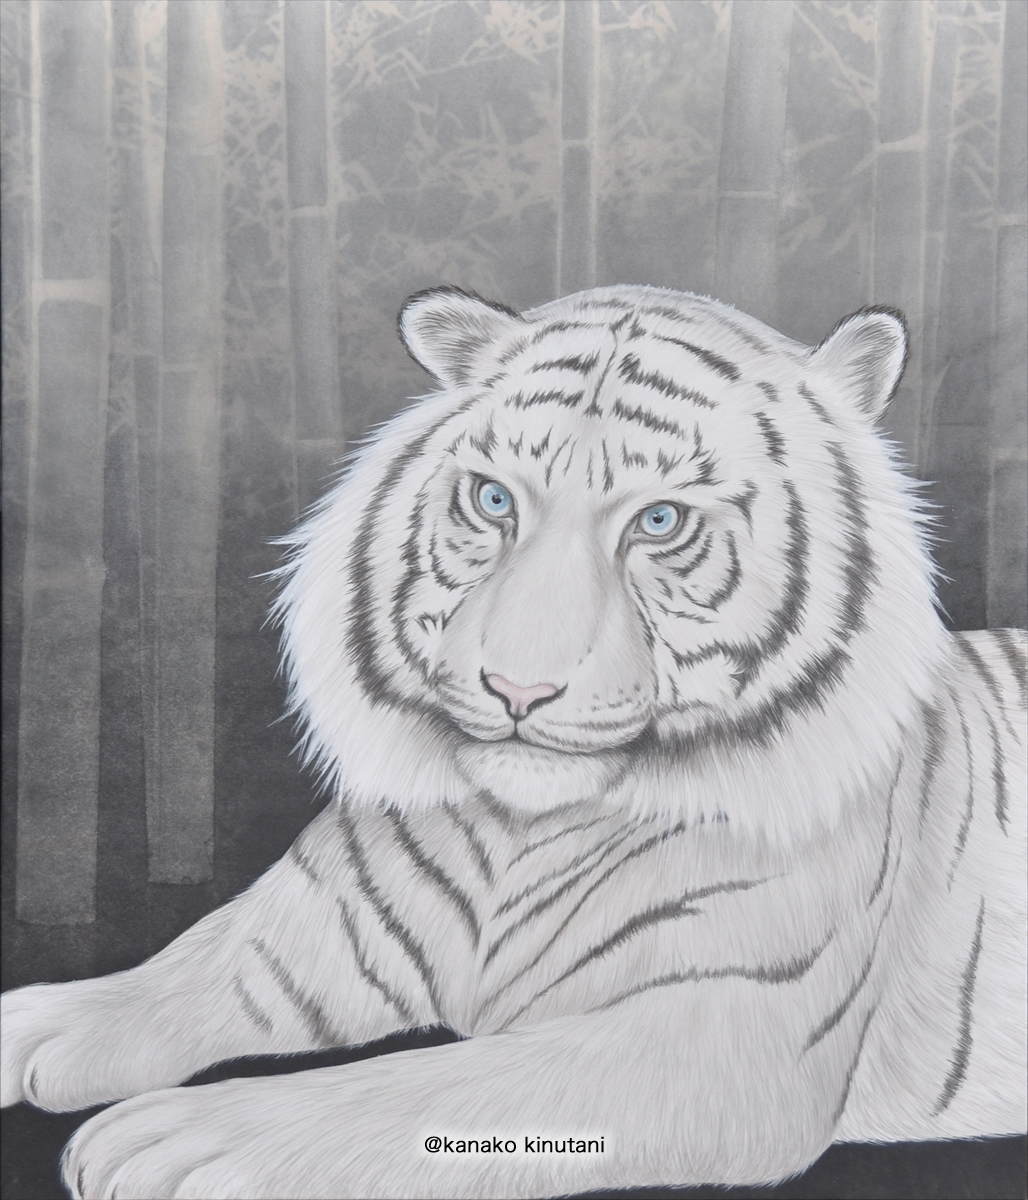 The Feeling of White Tiger